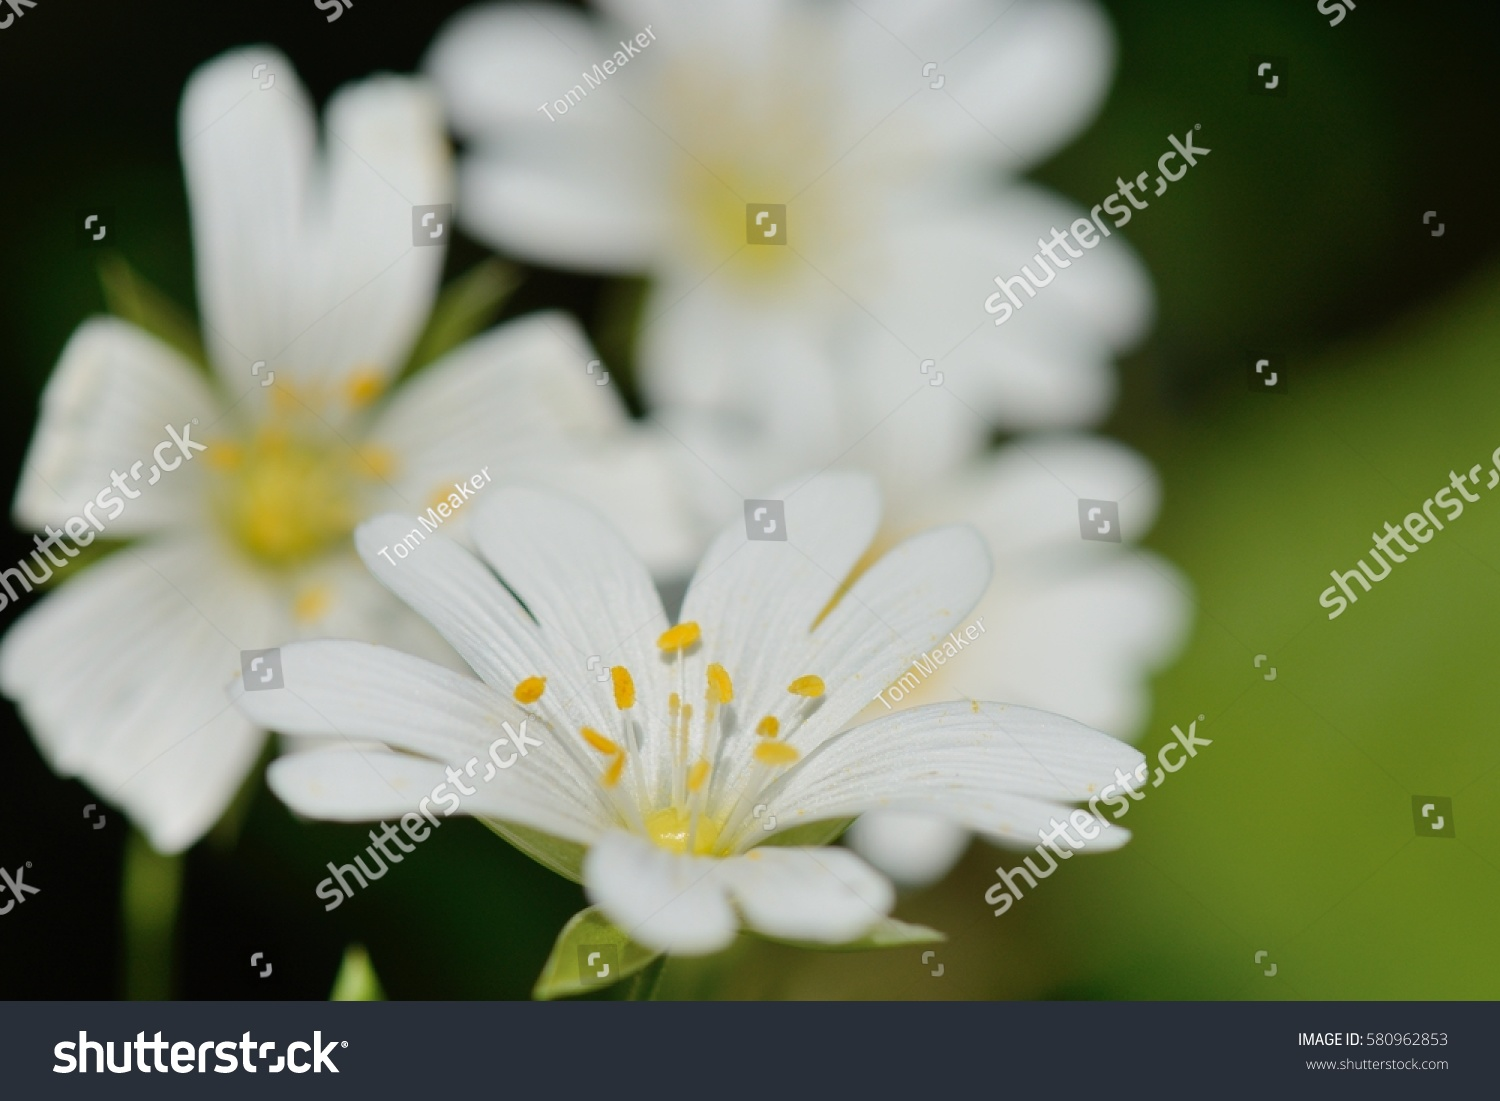 White Flower With Yellow Pollen On Nature Ez Canvas